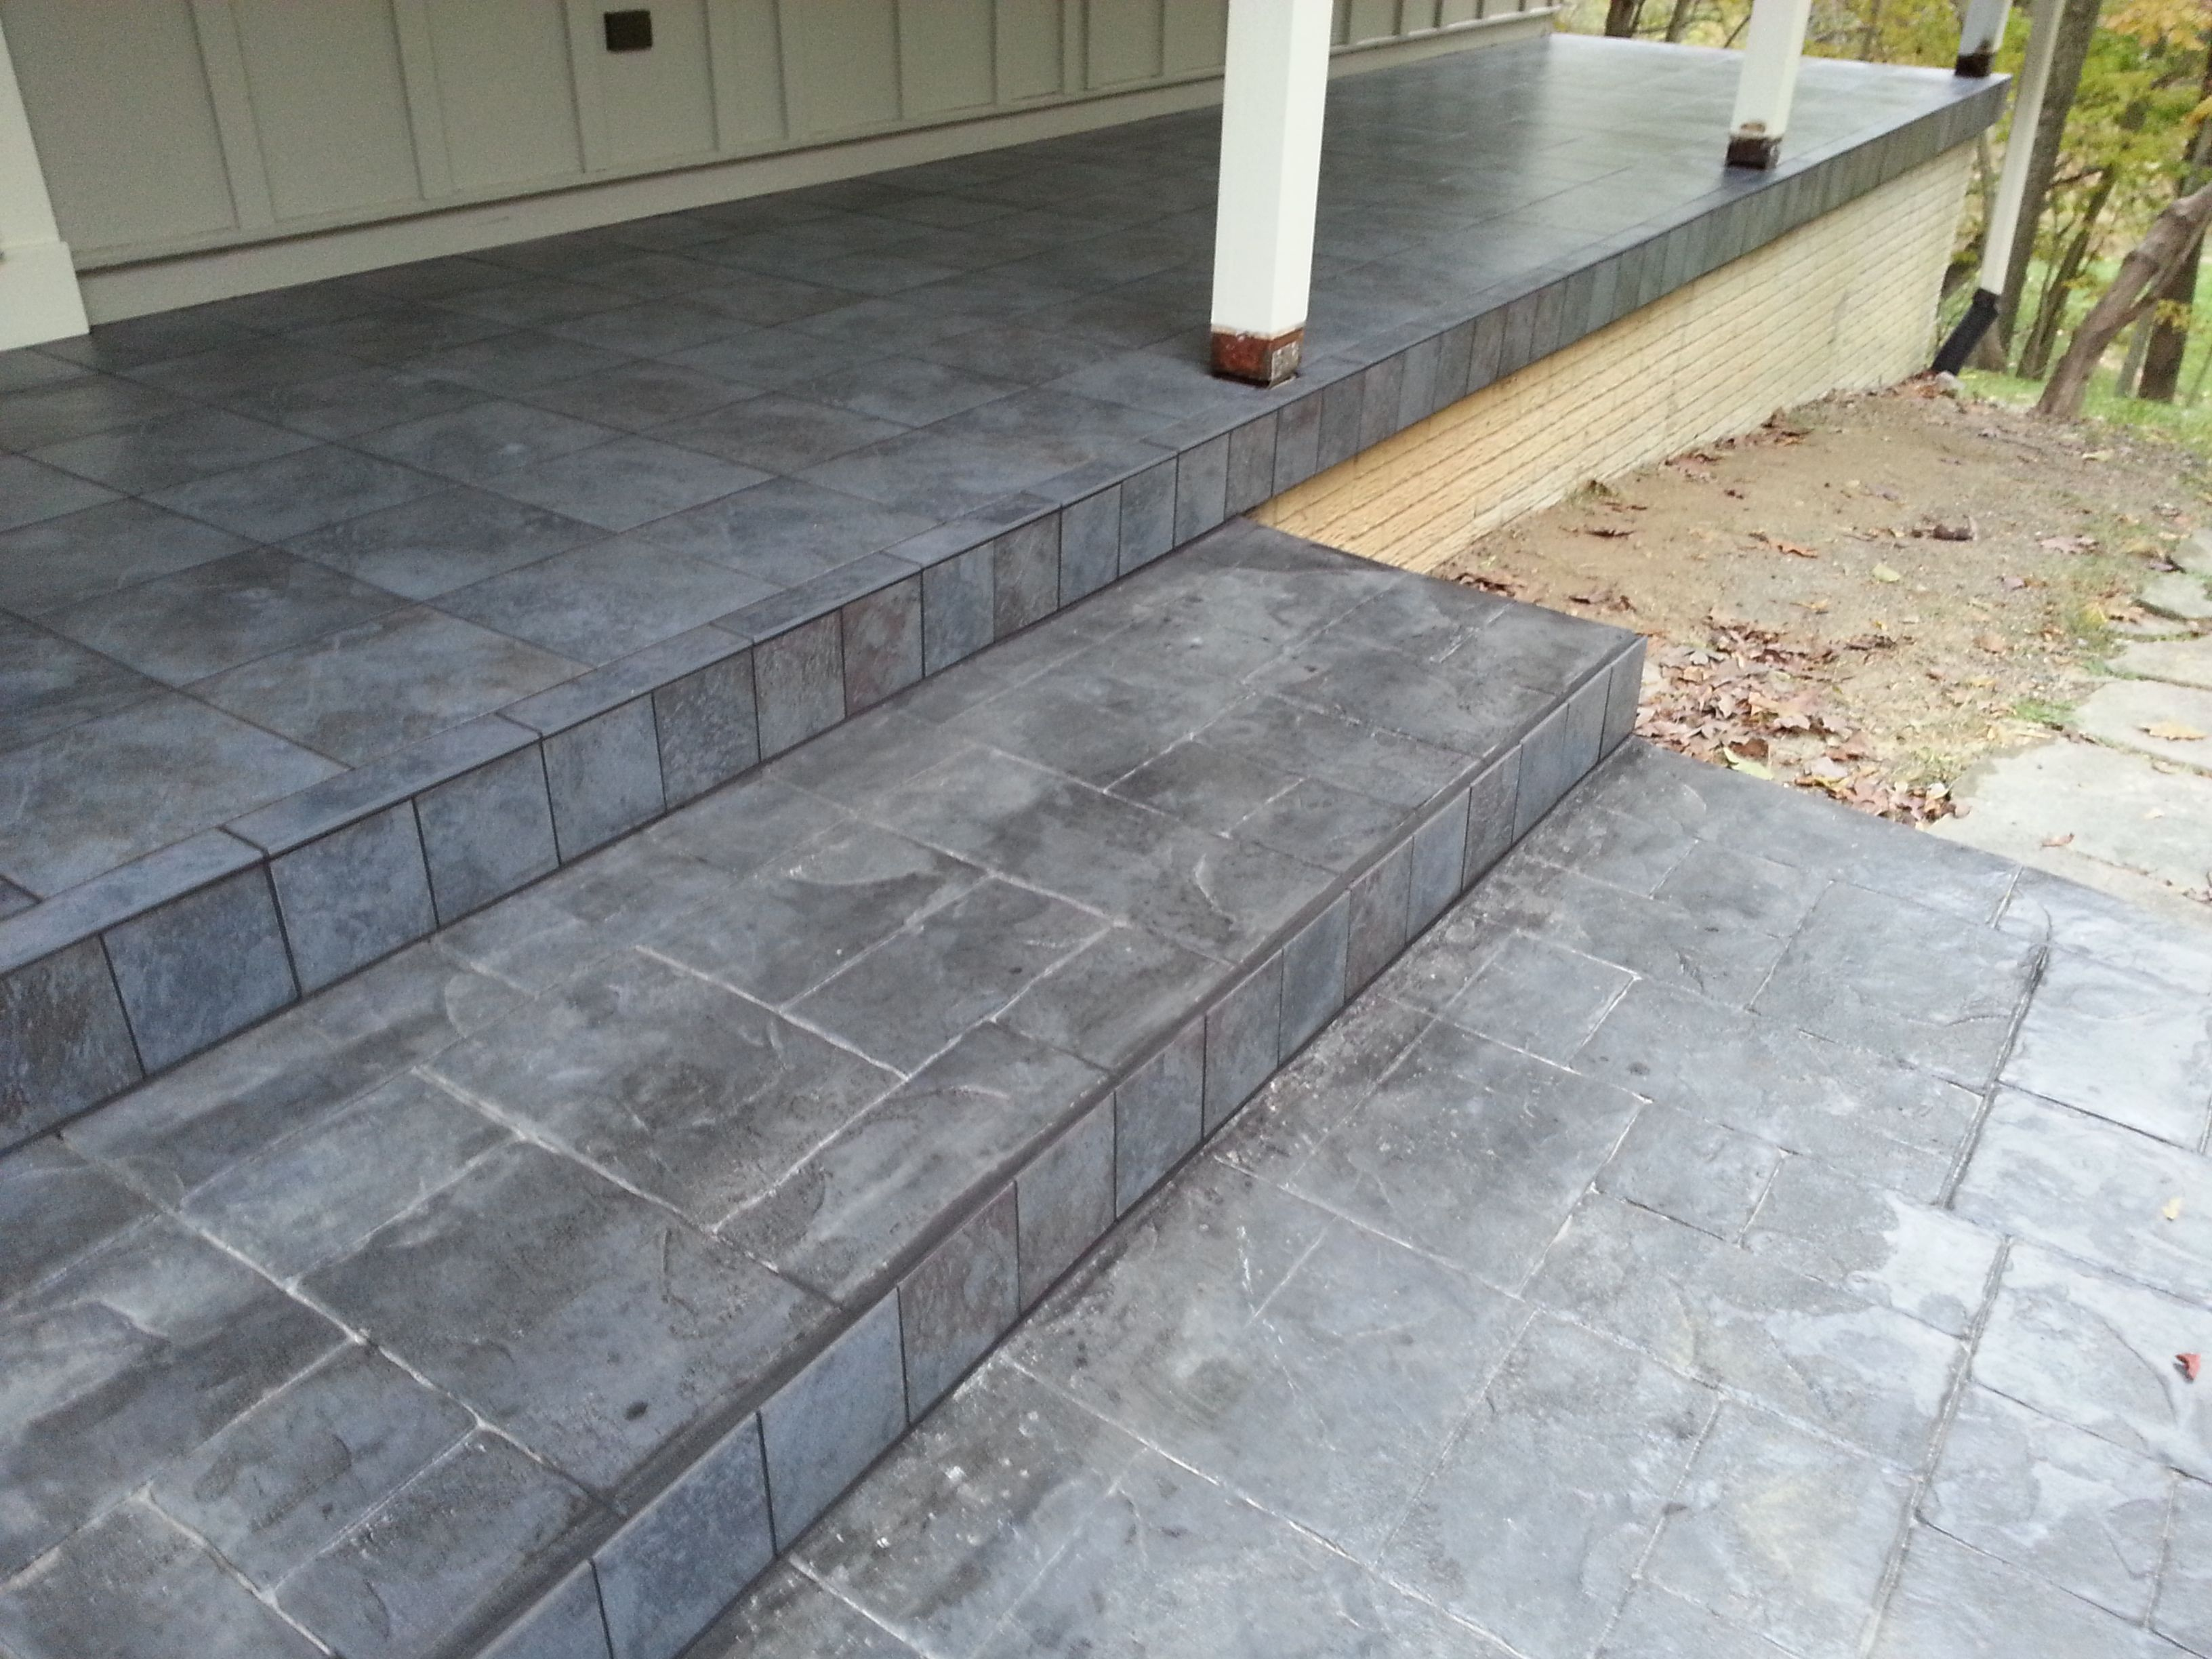 Tiled Front Porch To Match Existing Stained Concrete Design By Dennis Pinterest Front